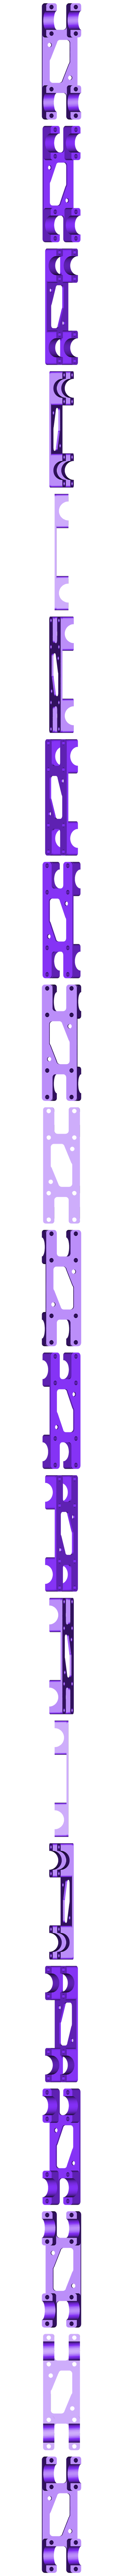 soporte vertical x 2.STL Download free STL file Video Stabilizer • Model to 3D print, relieves3d